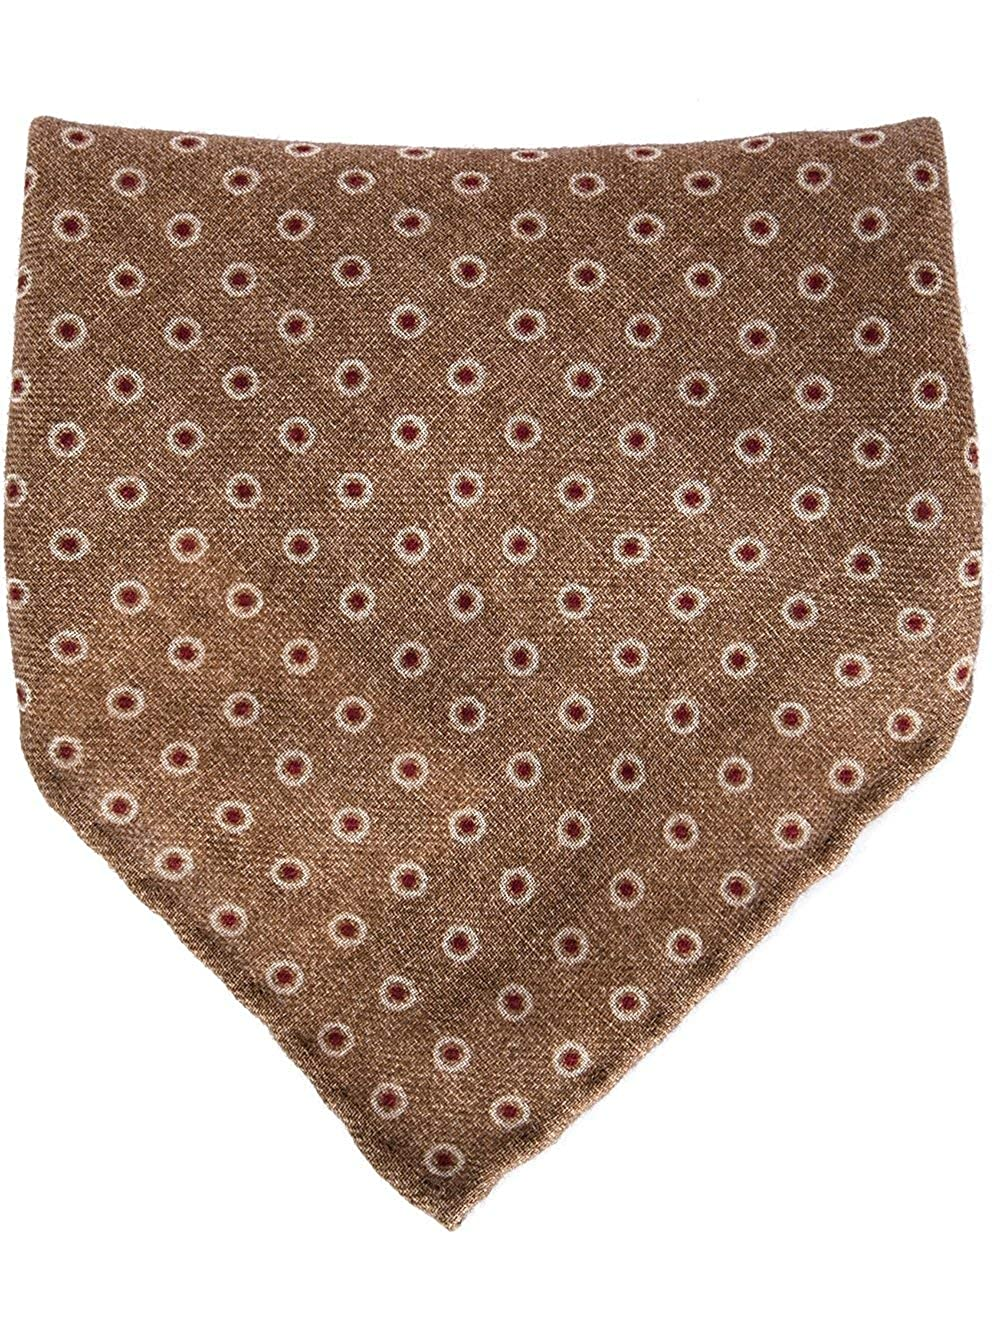 Brunello Cucinelli Brown Dotted Print Handkerchief//Pocket Square